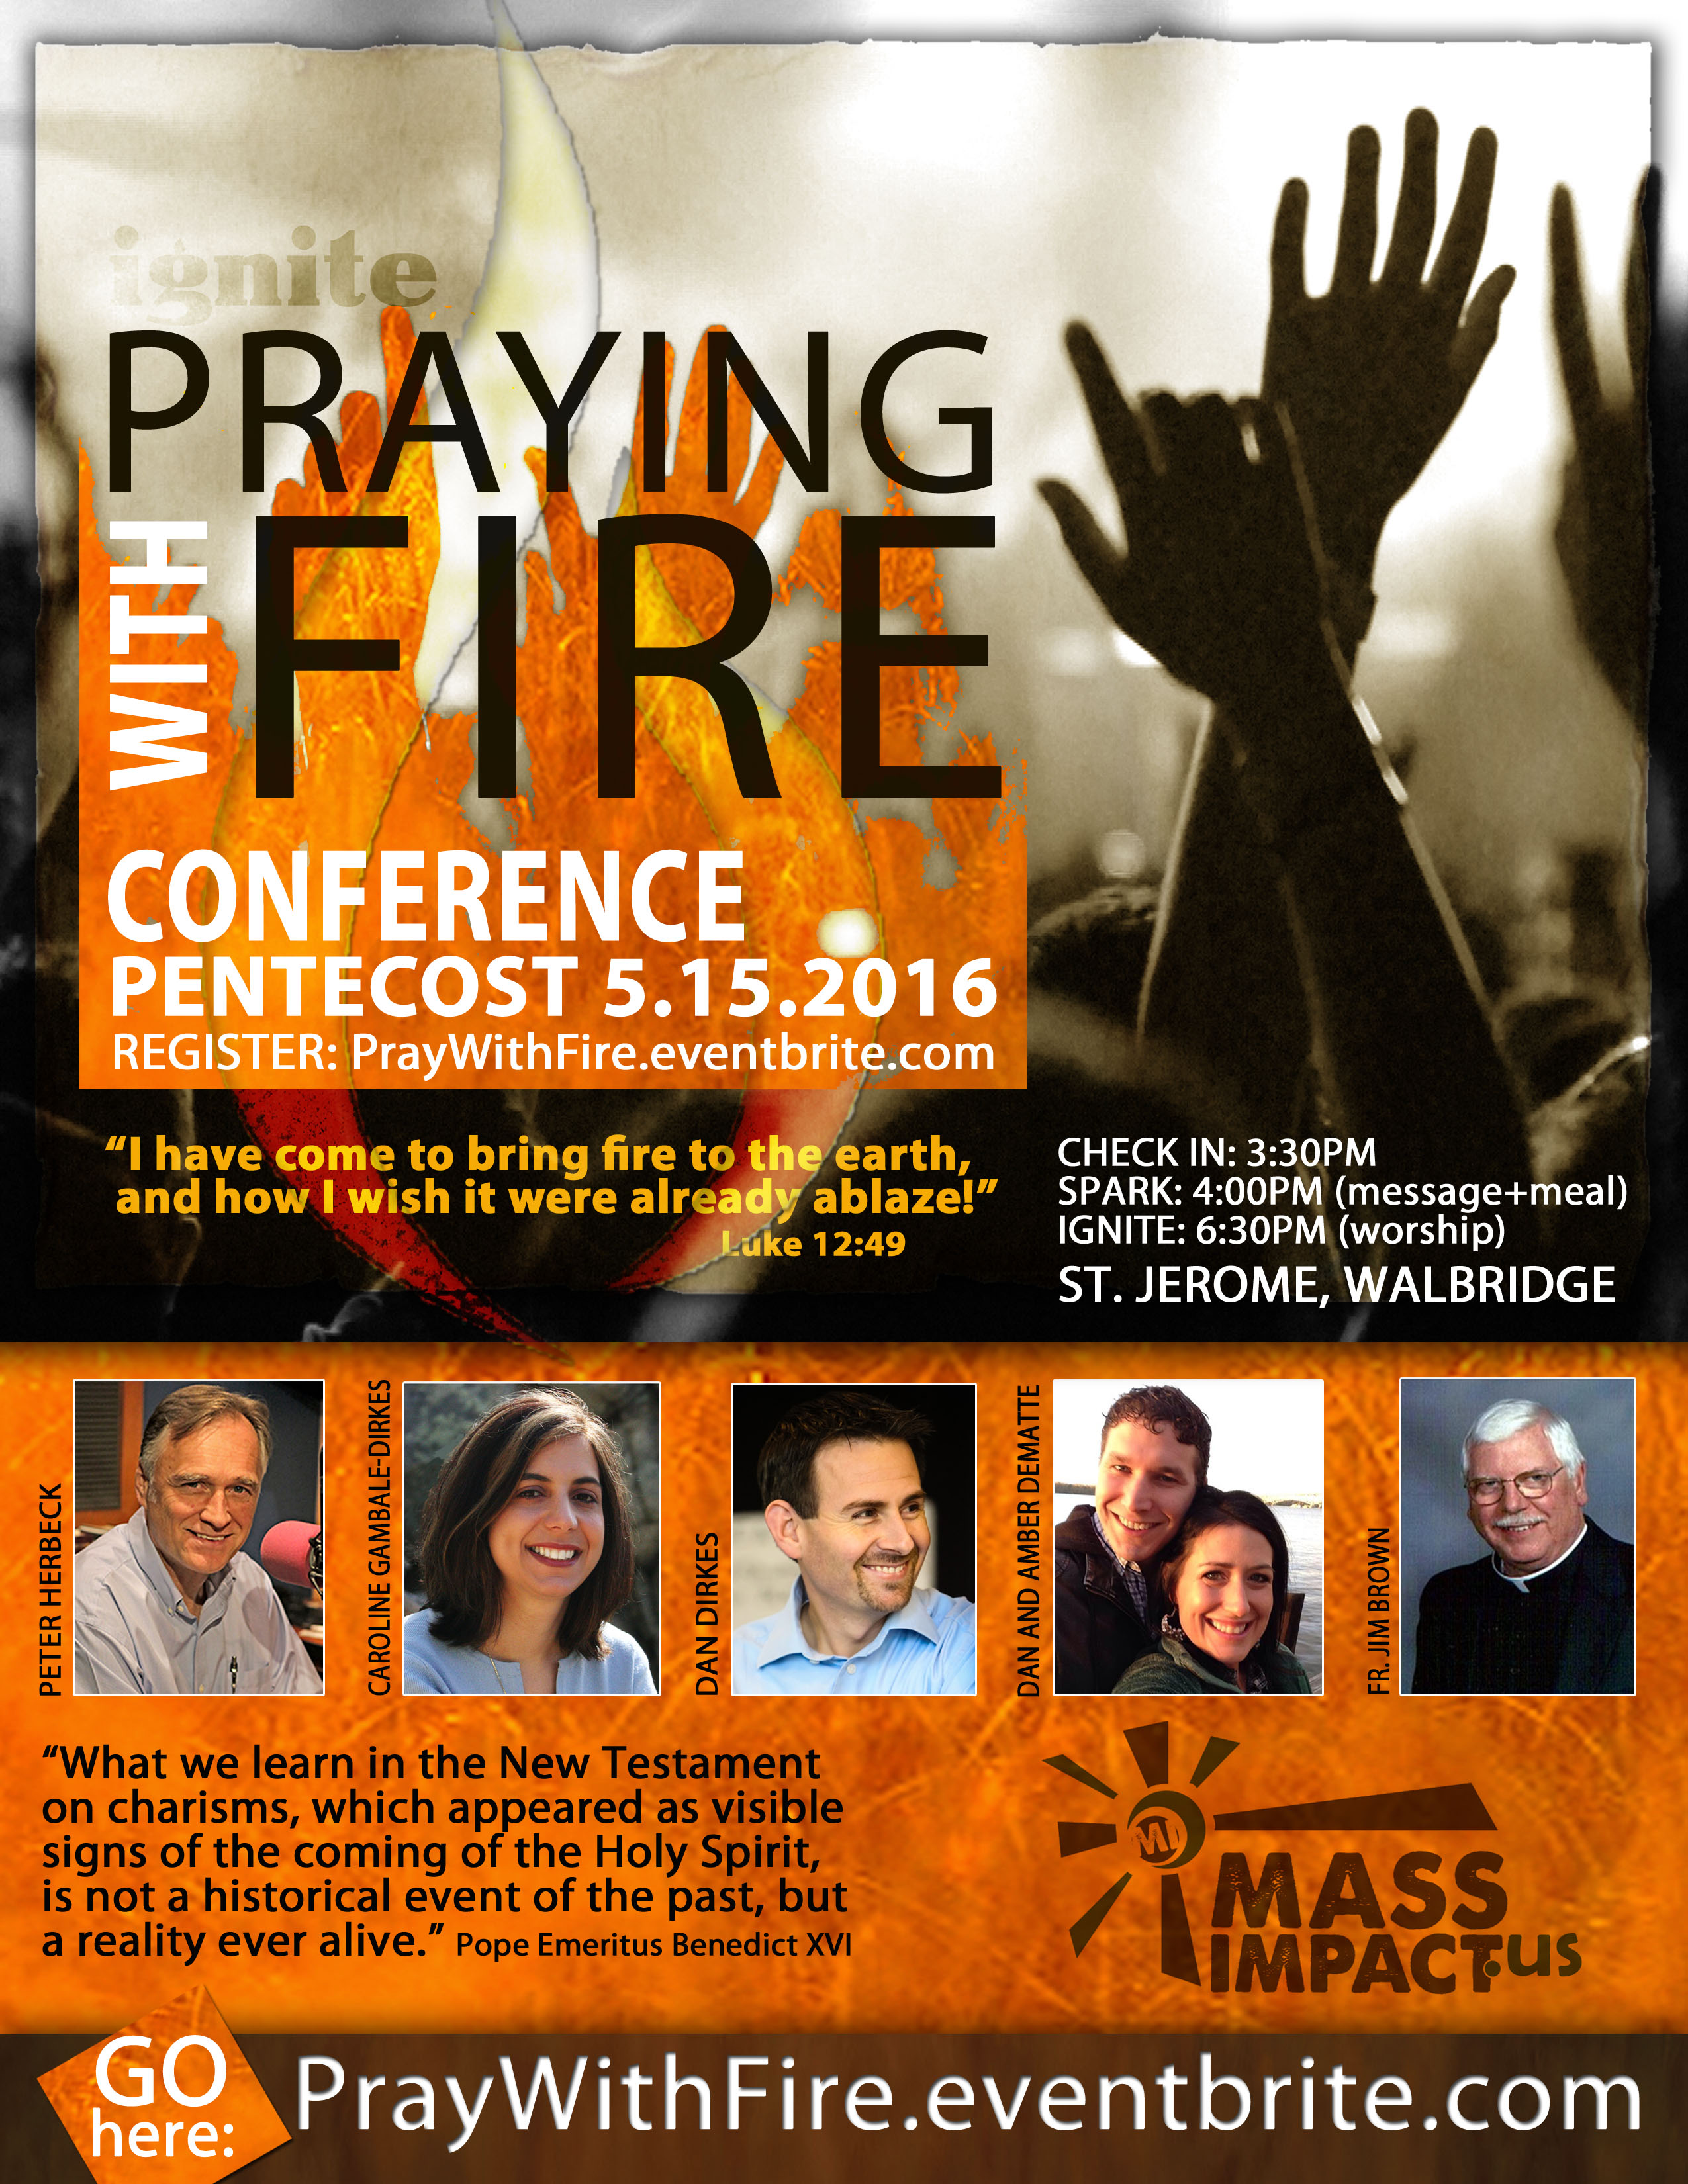 IGNITE Praying with Fire